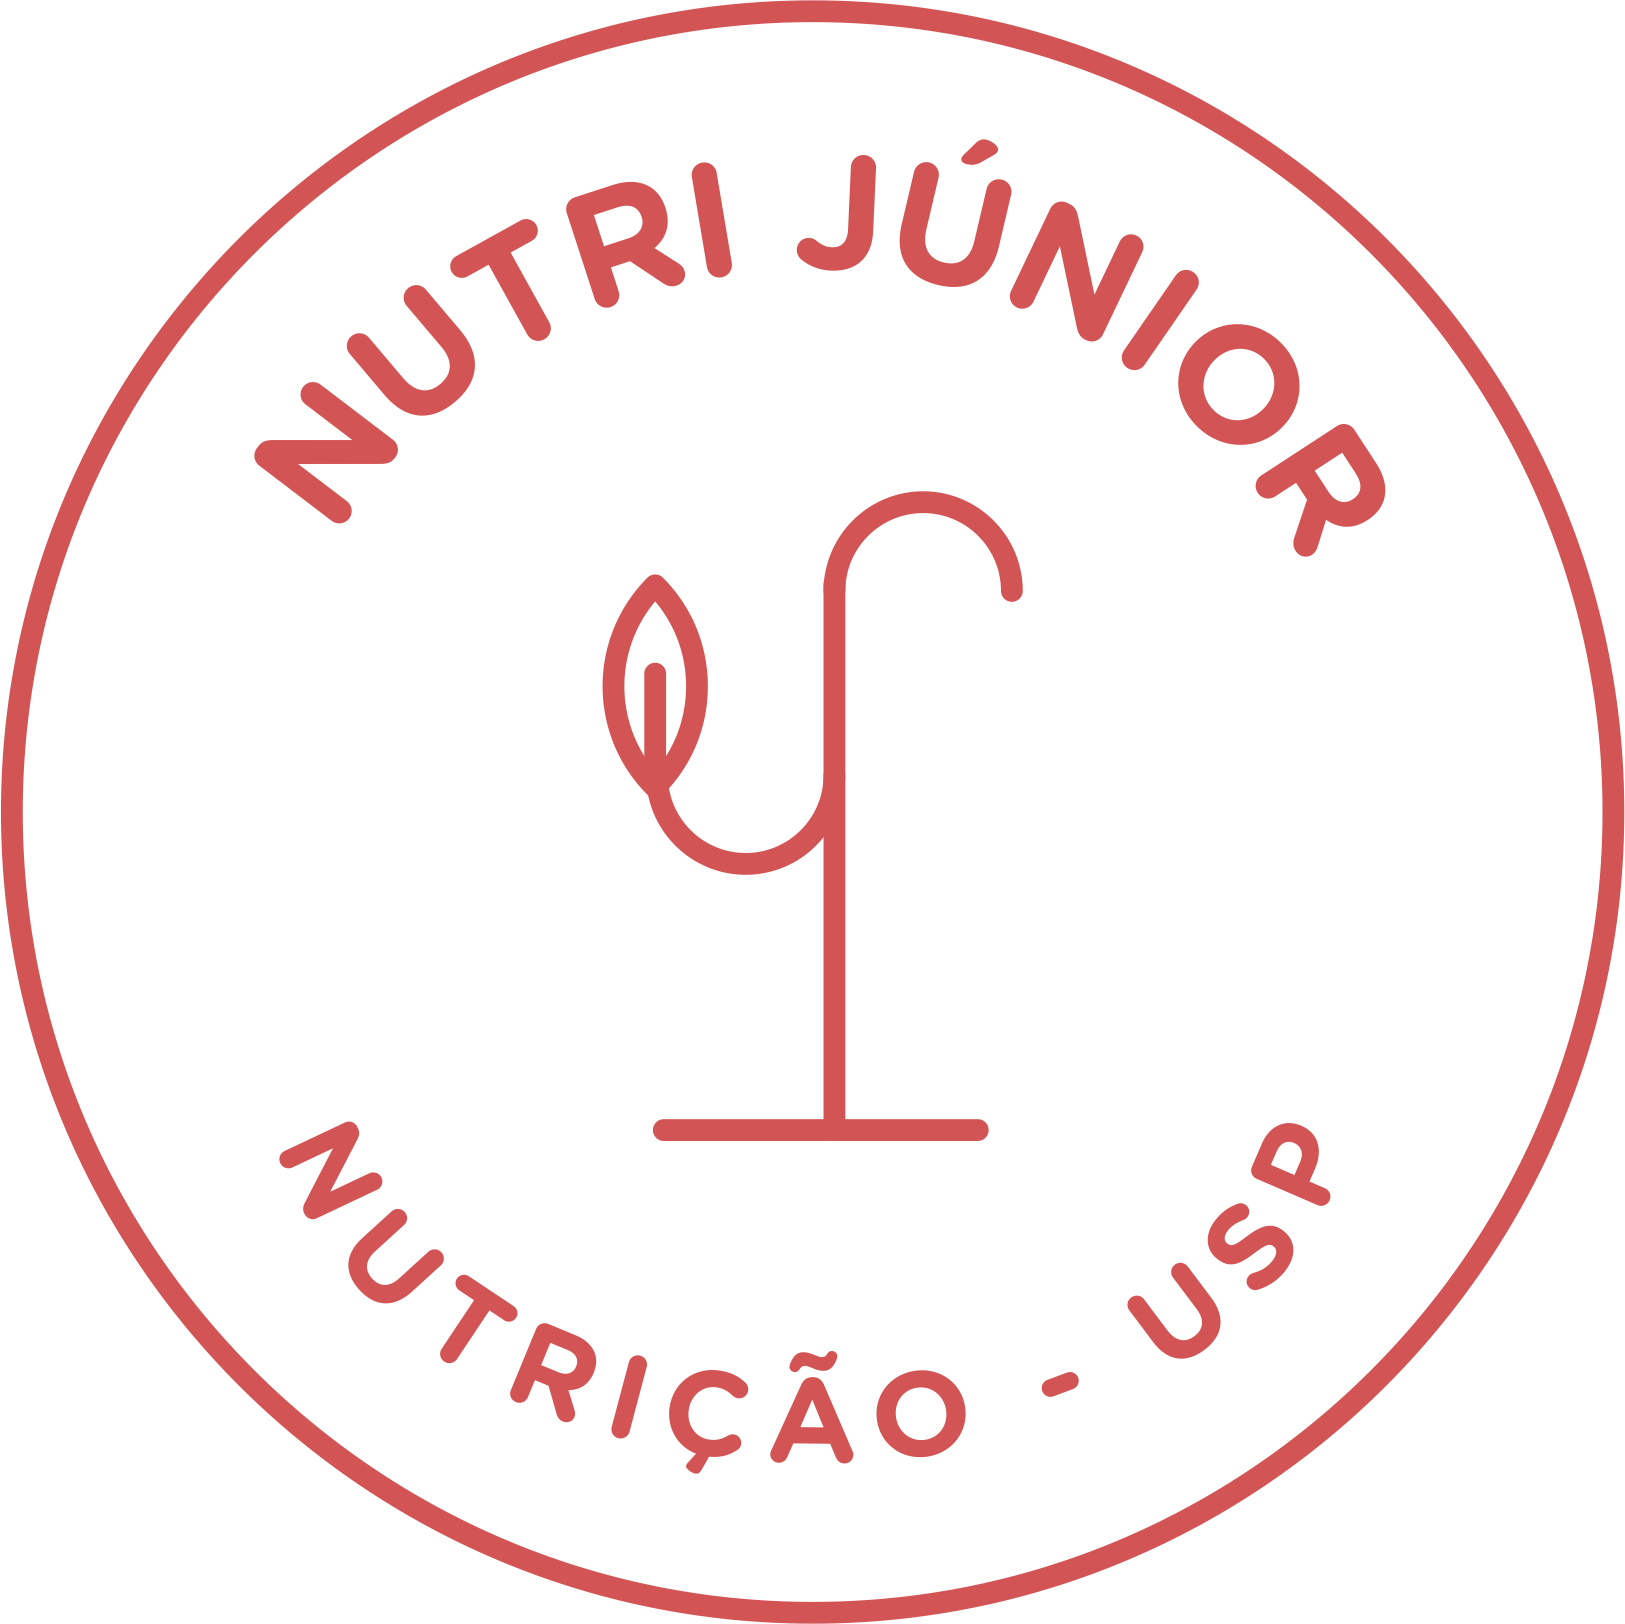 Nutri Junior